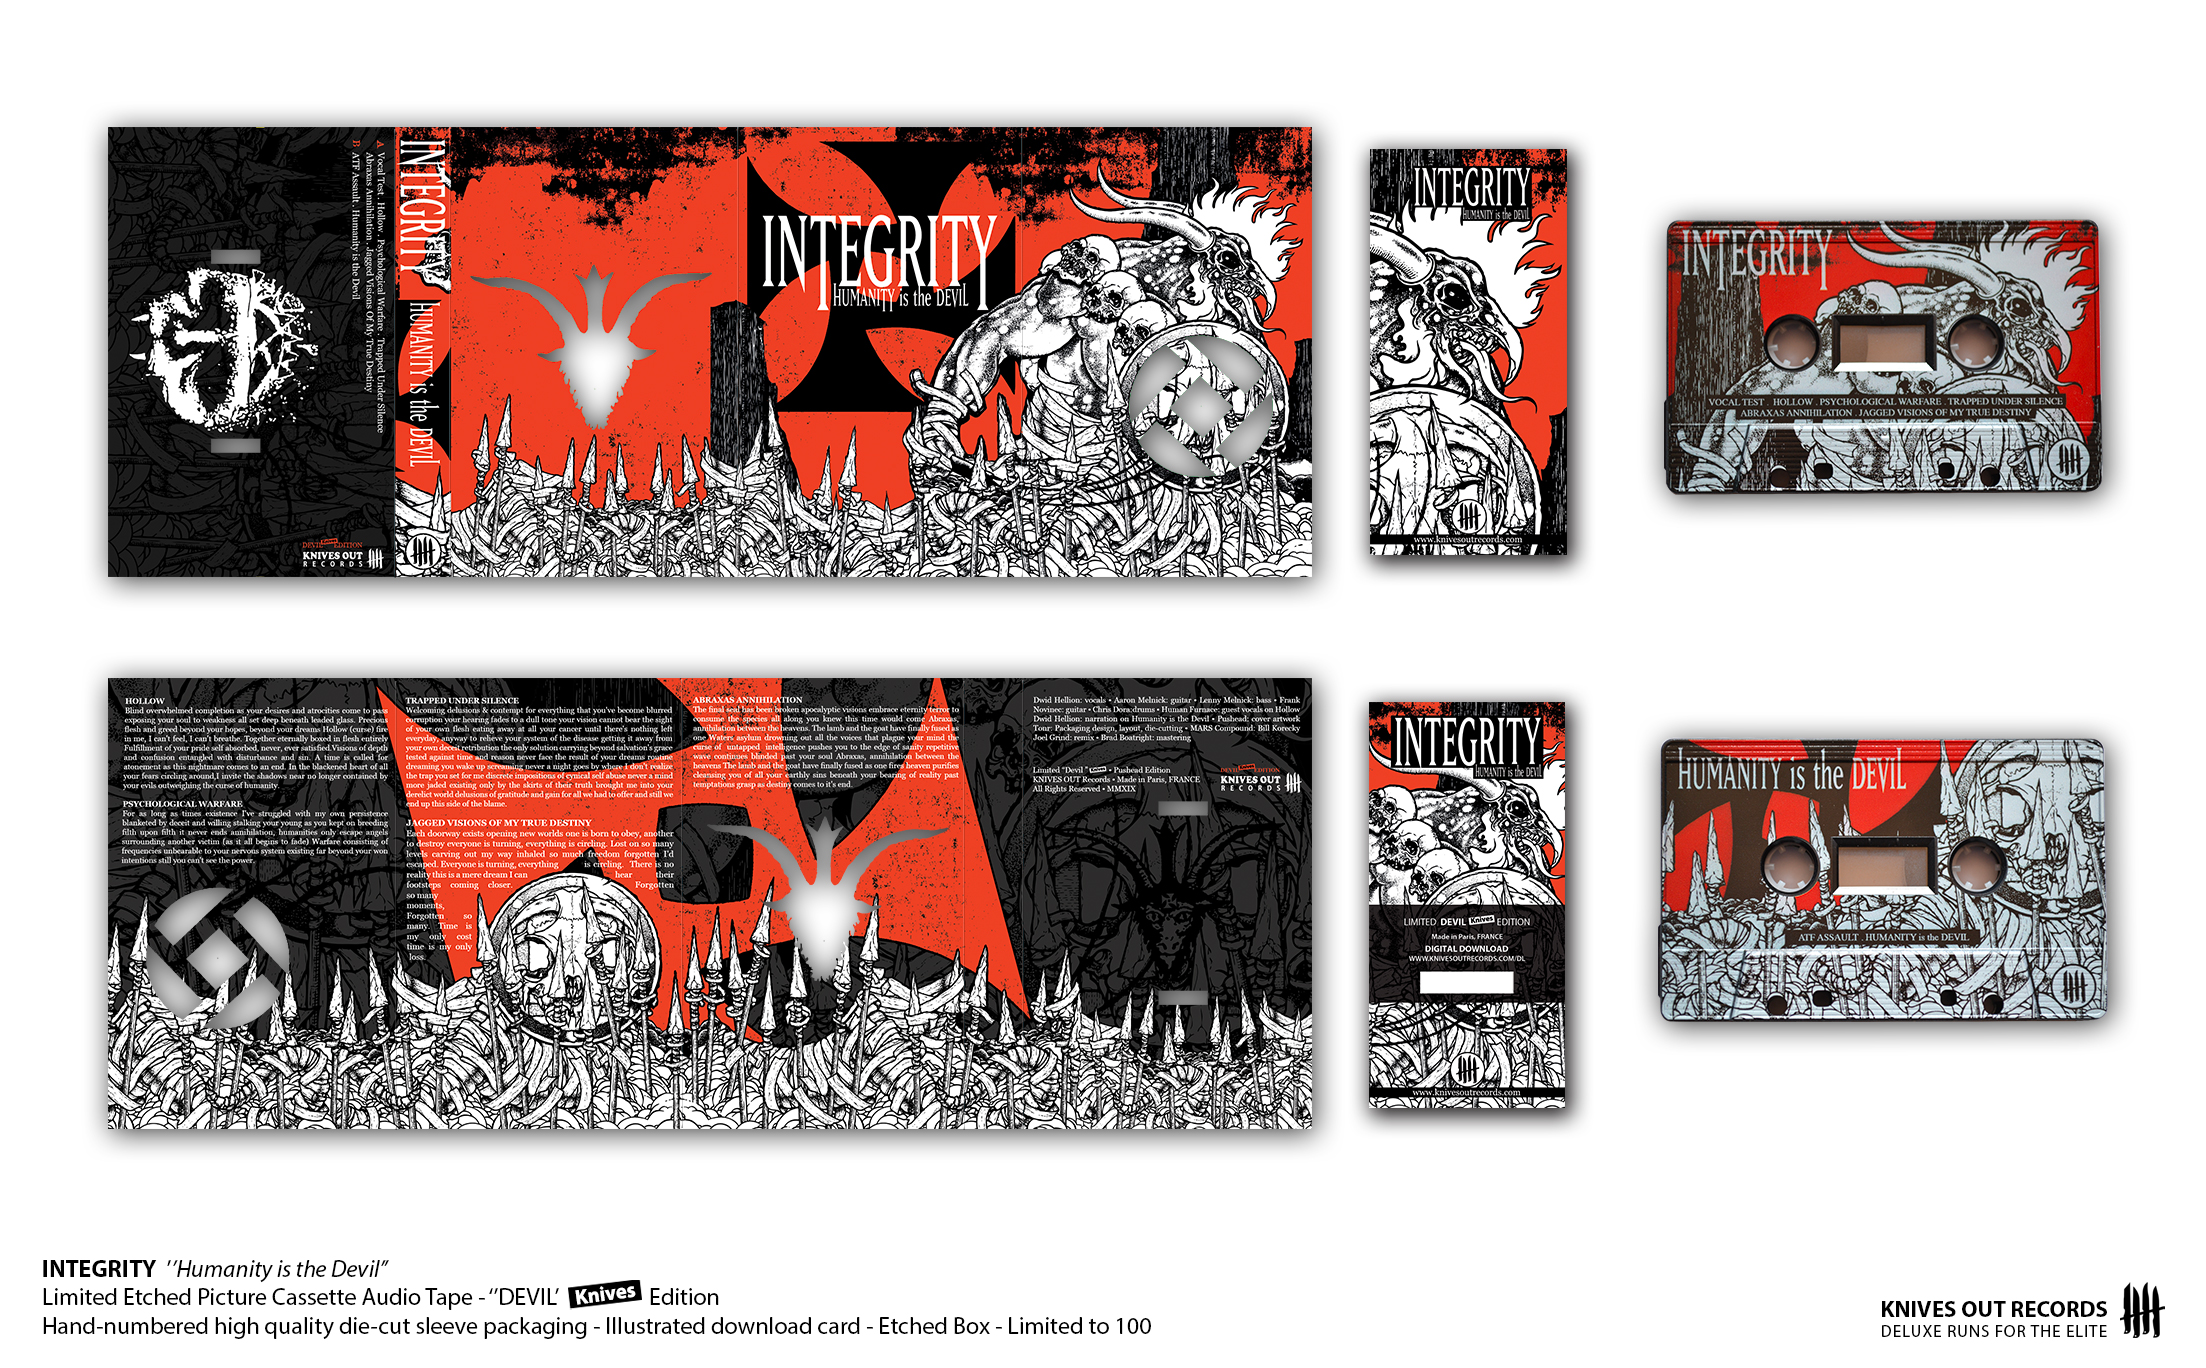 """INTEGRITY """"Humanity is the Devil"""" - """"Devil II"""" Pushead Edition - Picture Cassette Audio Tape"""